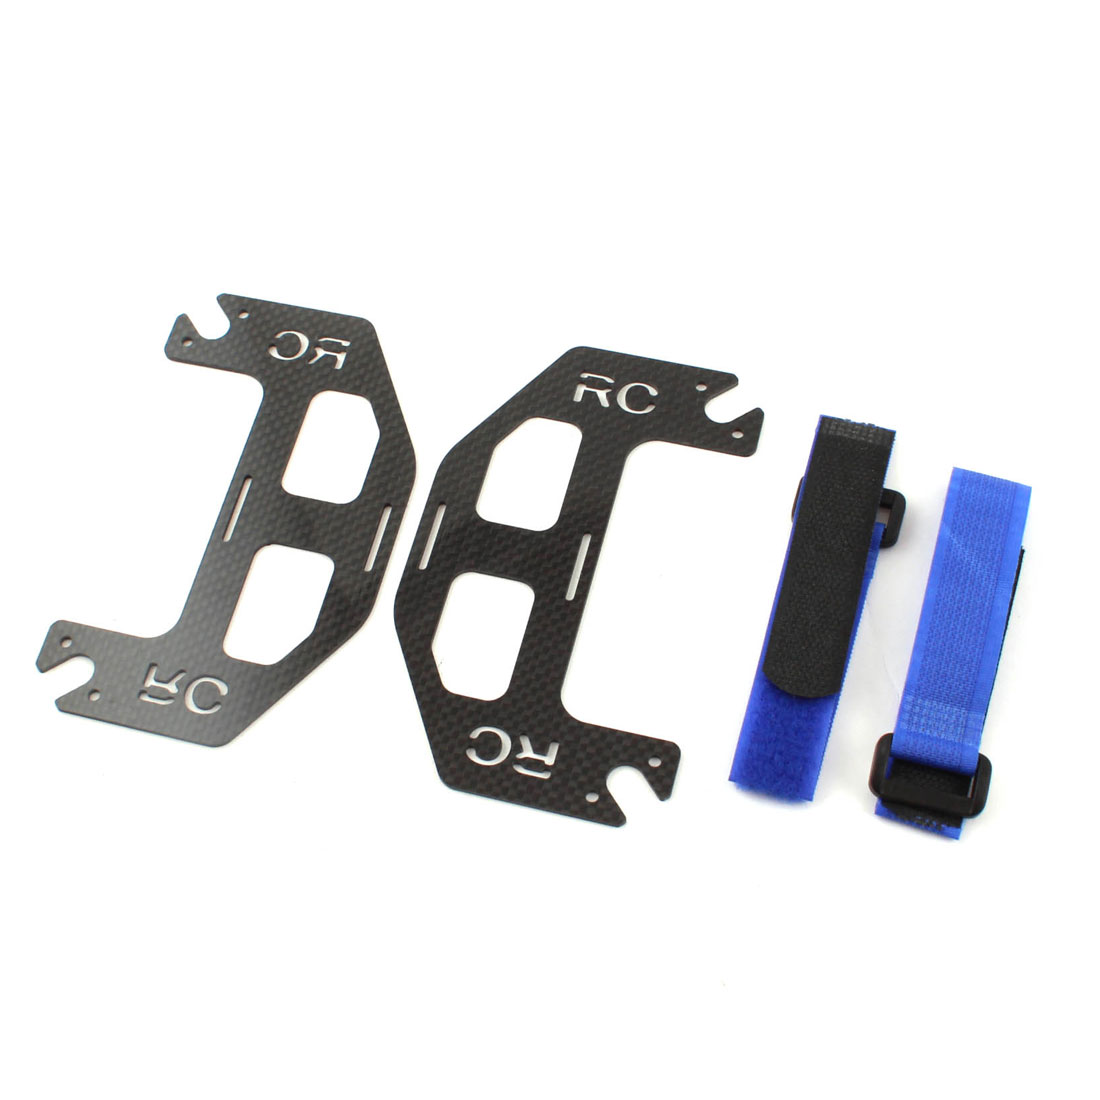 Carbon Fiber Double Battery Mount Extended Plate Board Black for DJI Phantom Quadcopter